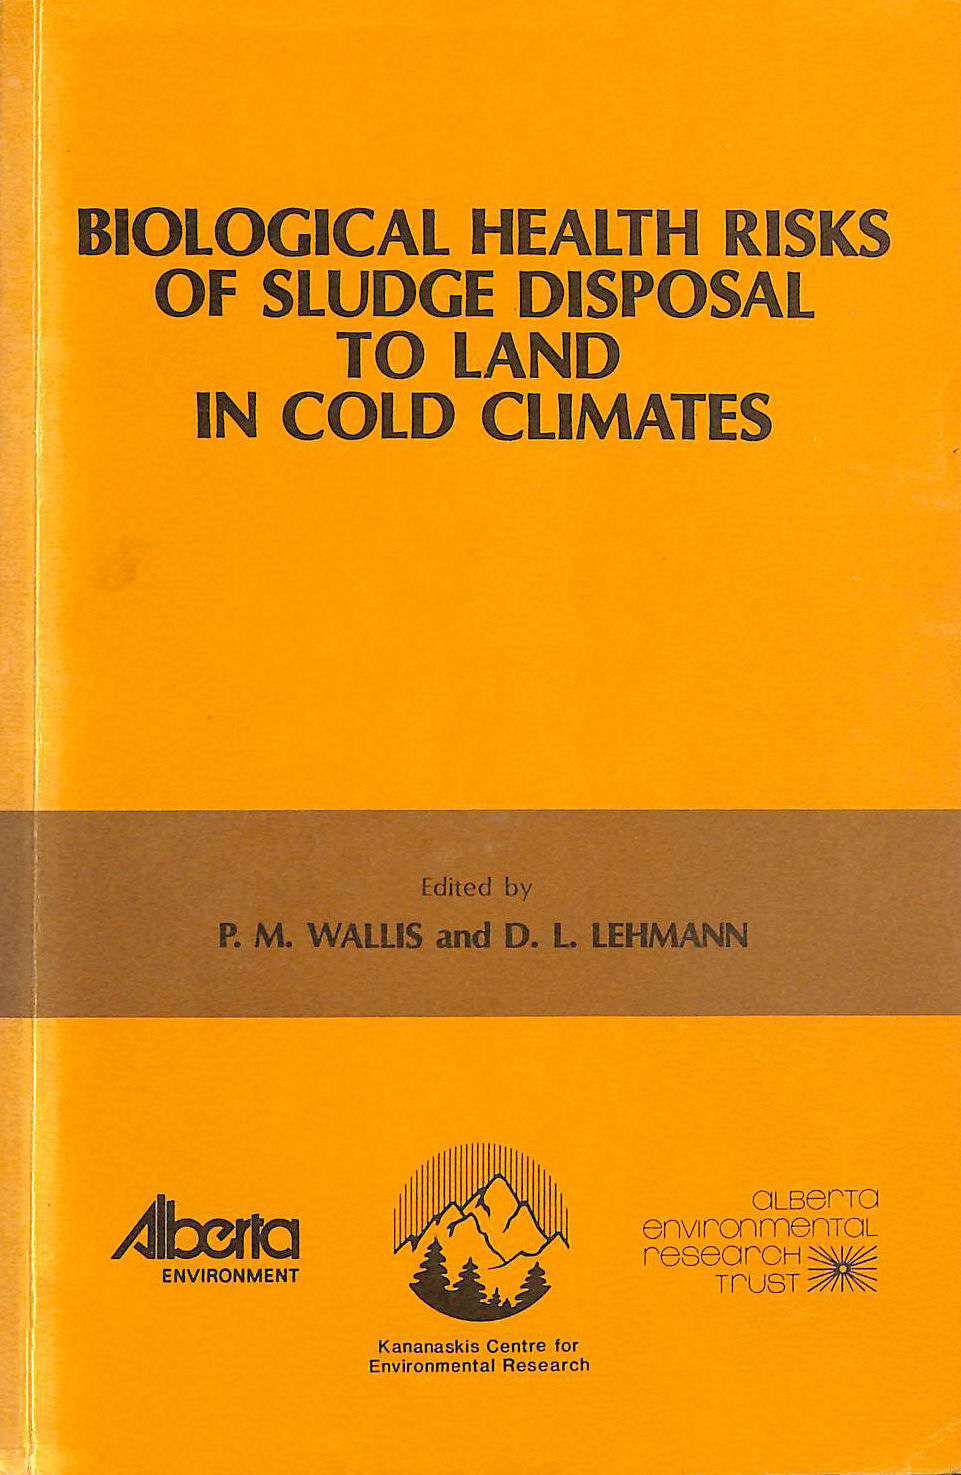 Image for Biological health risks of sludge disposal to land in cold climates